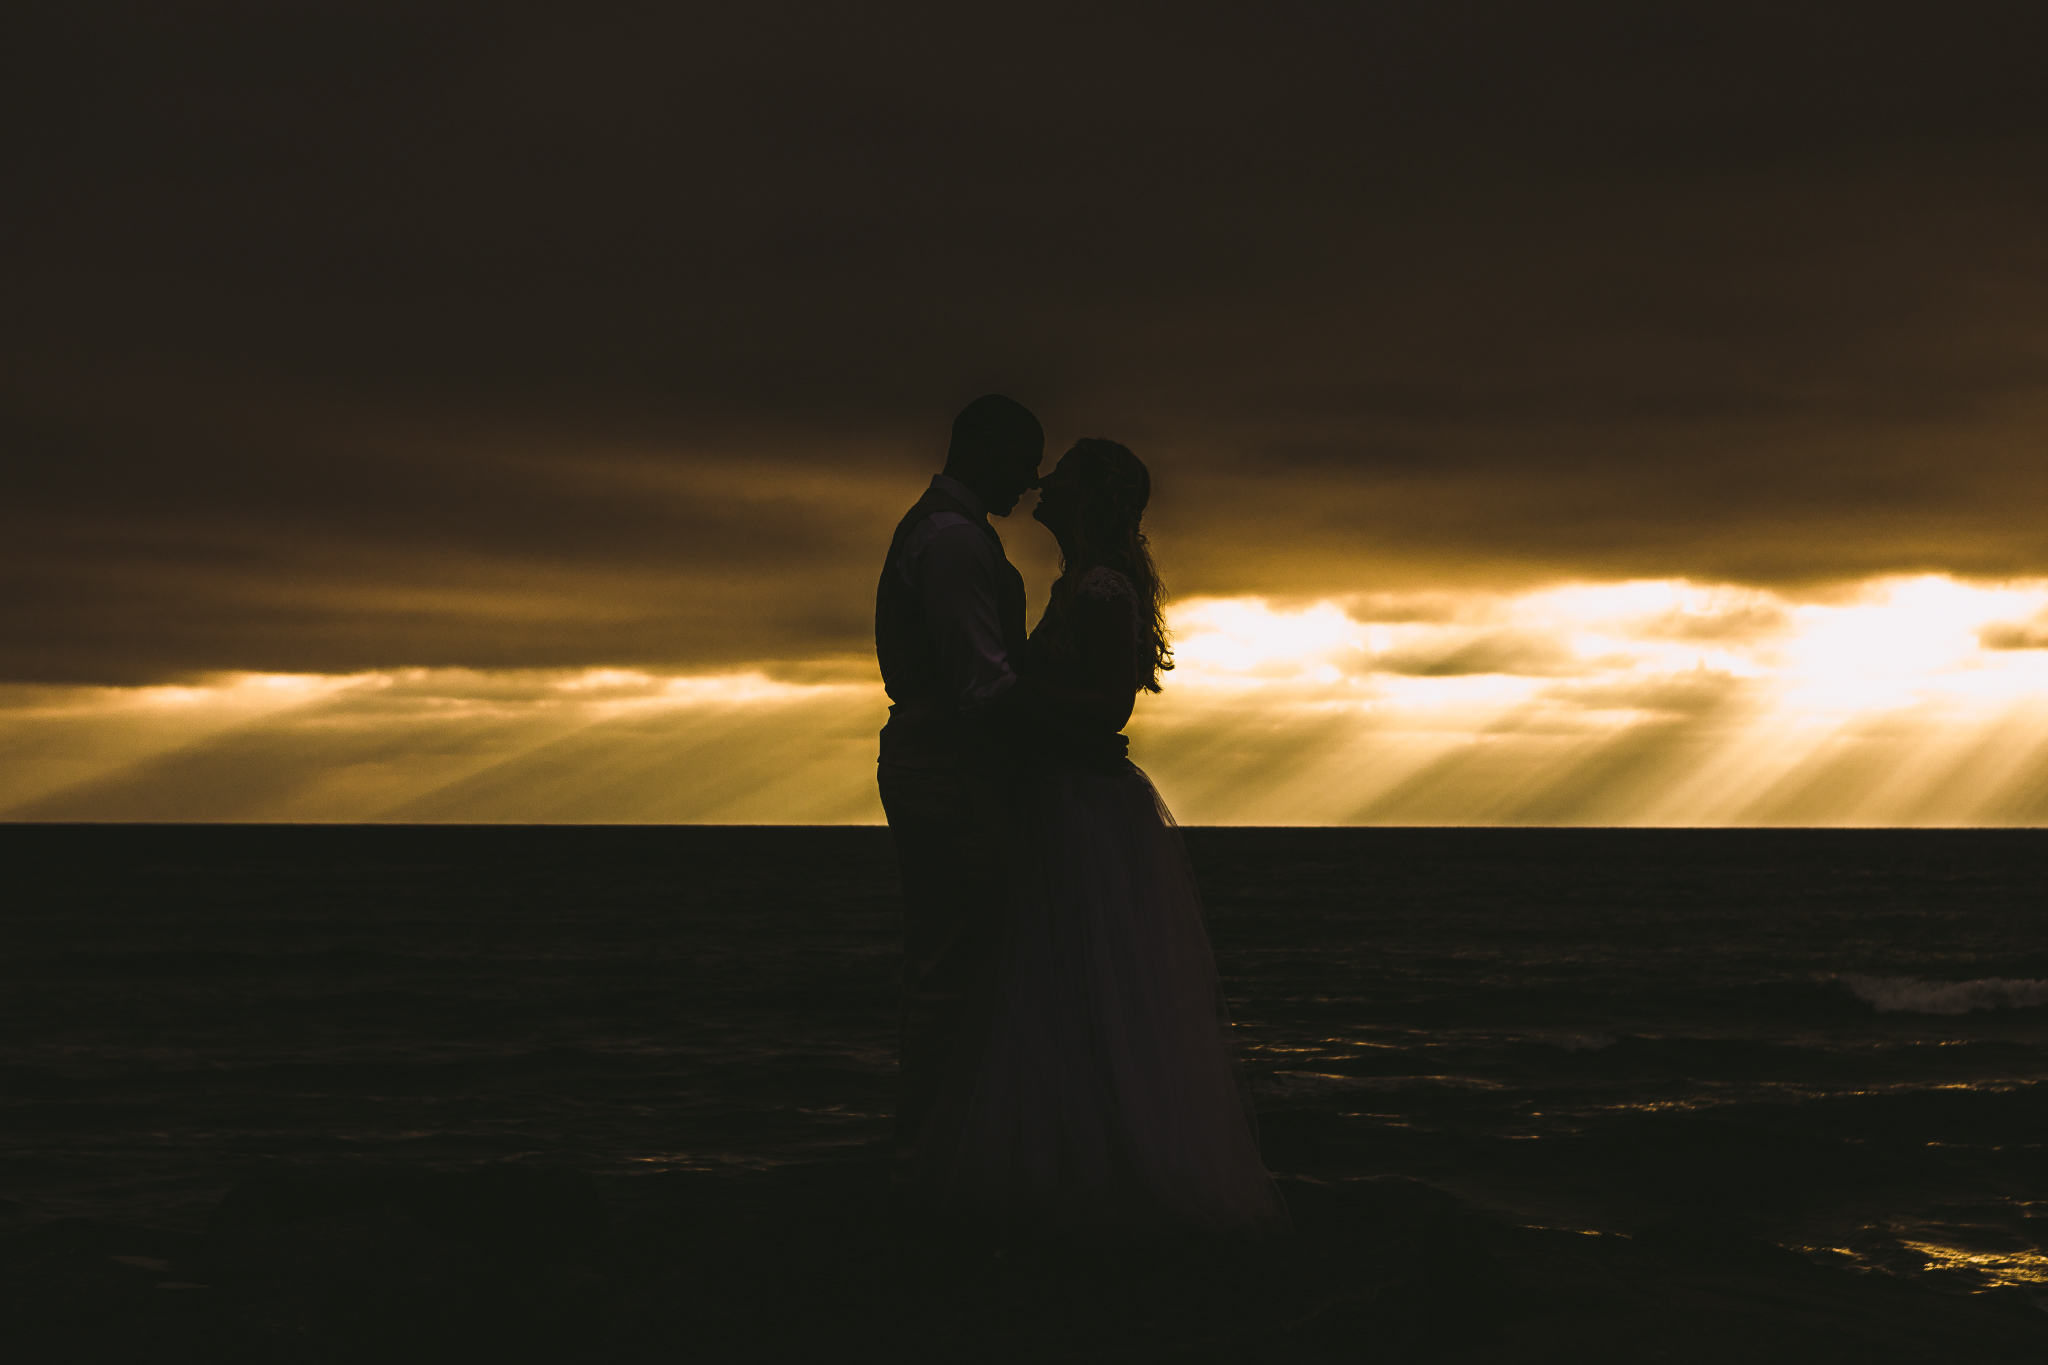 san diego wedding   photographer | silhouette of married couple looking at each other with   sunrays in the background seen from afar